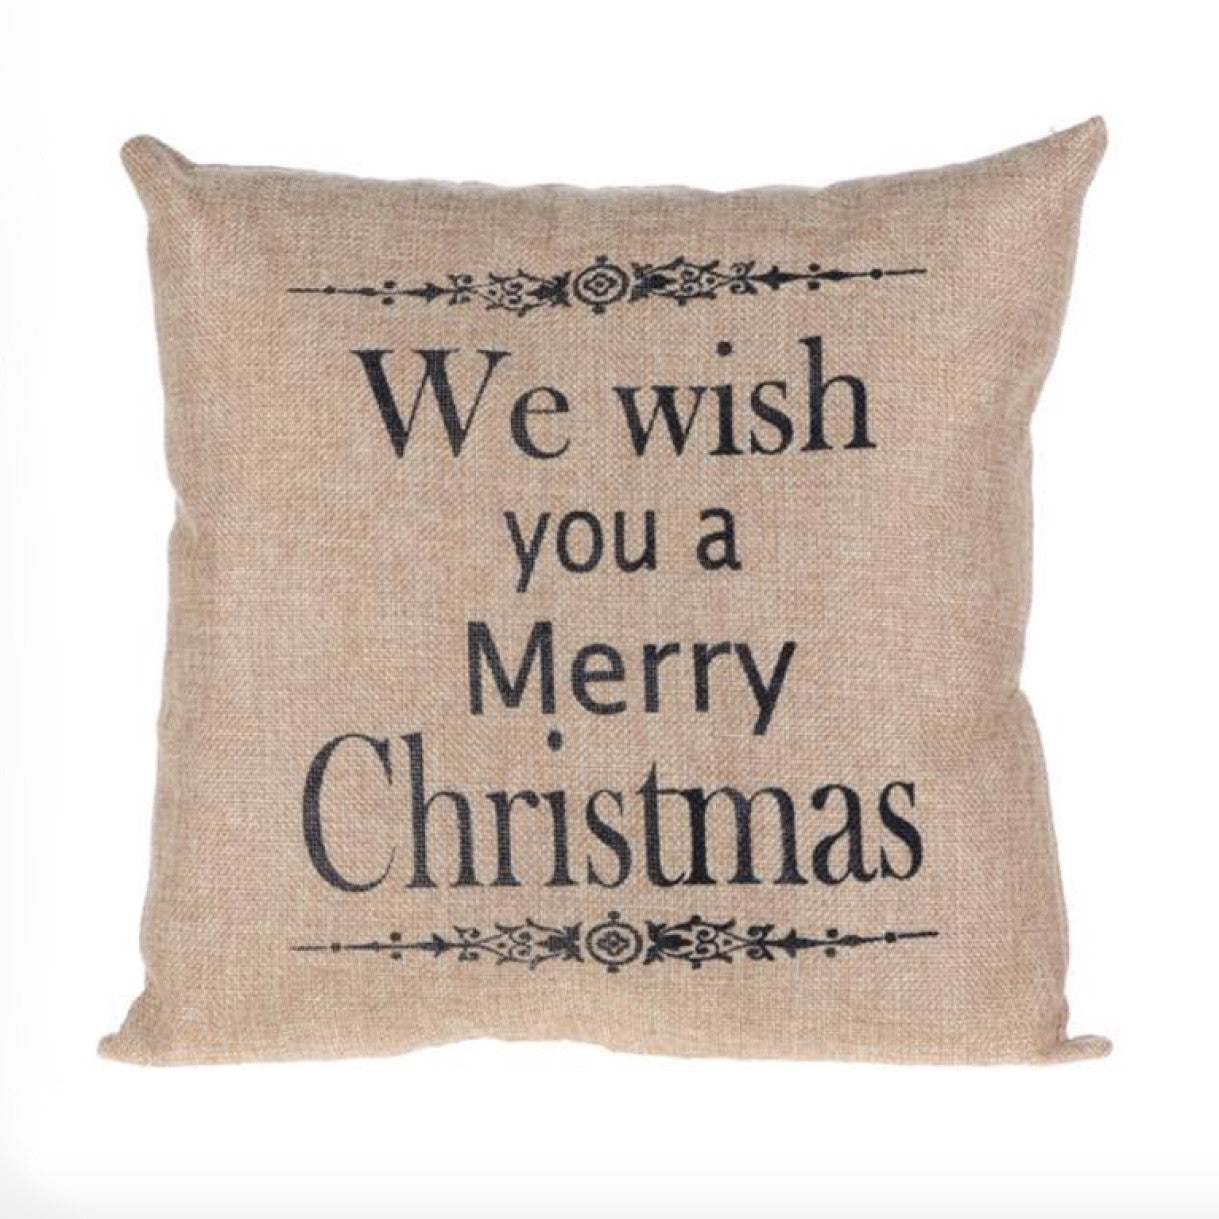 """We wish you a Merry Christmas"" Pillow"